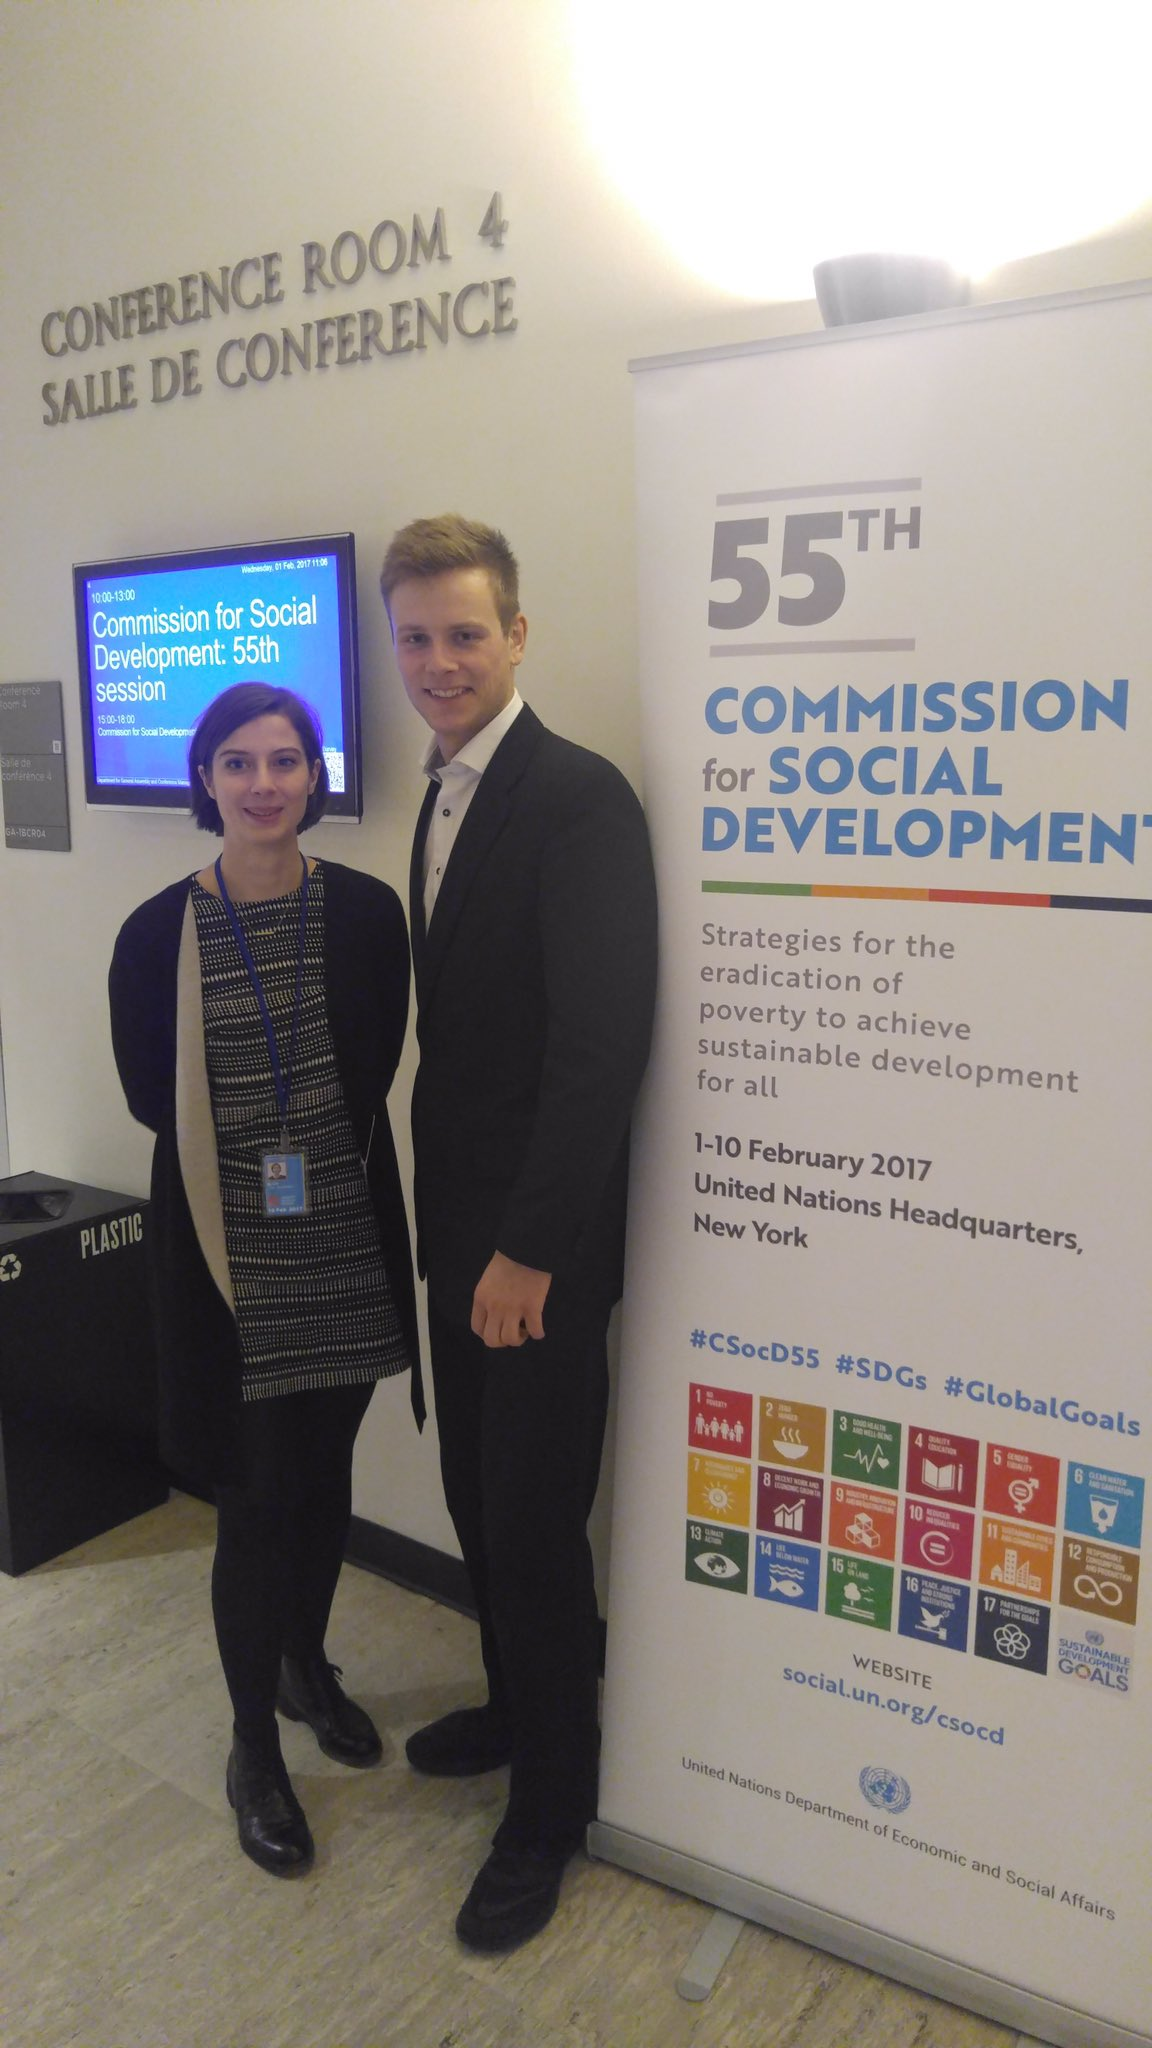 Proud to have our youth delegates Katharina and Eric here in New York, providing youths' voice to #CSocD55 discussions. https://t.co/aU2fLlrnYN